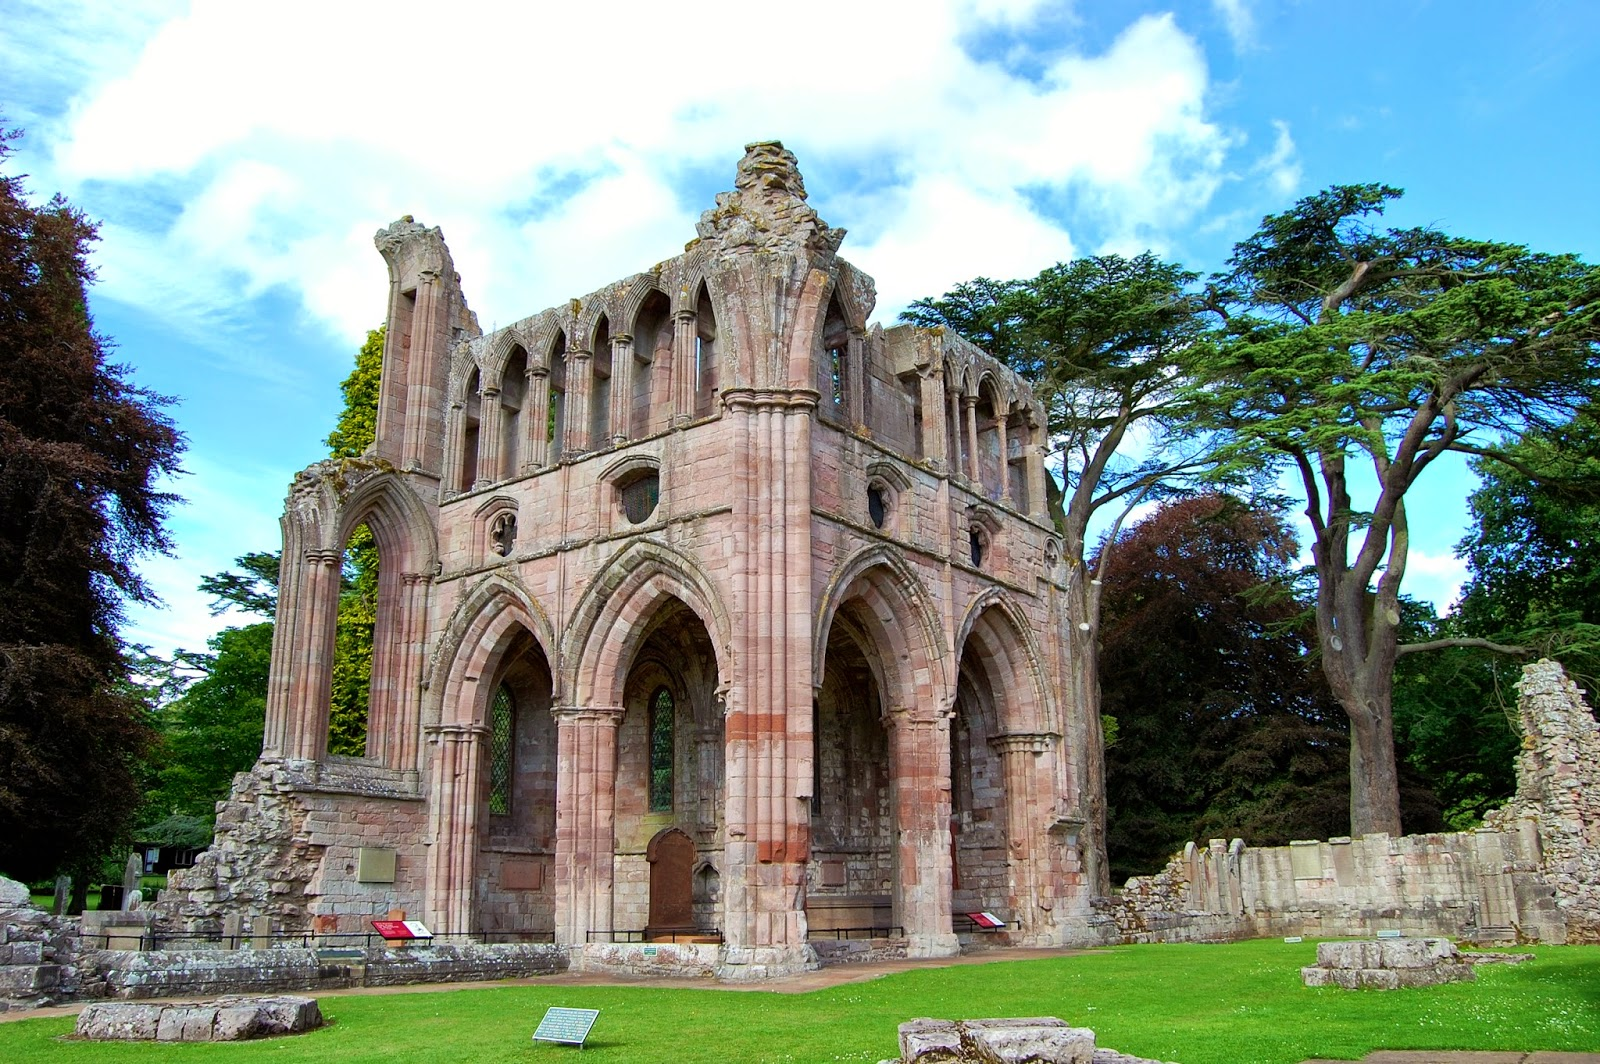 Sir Walter Scott's tomb in ruins of Dryburgh Abbey